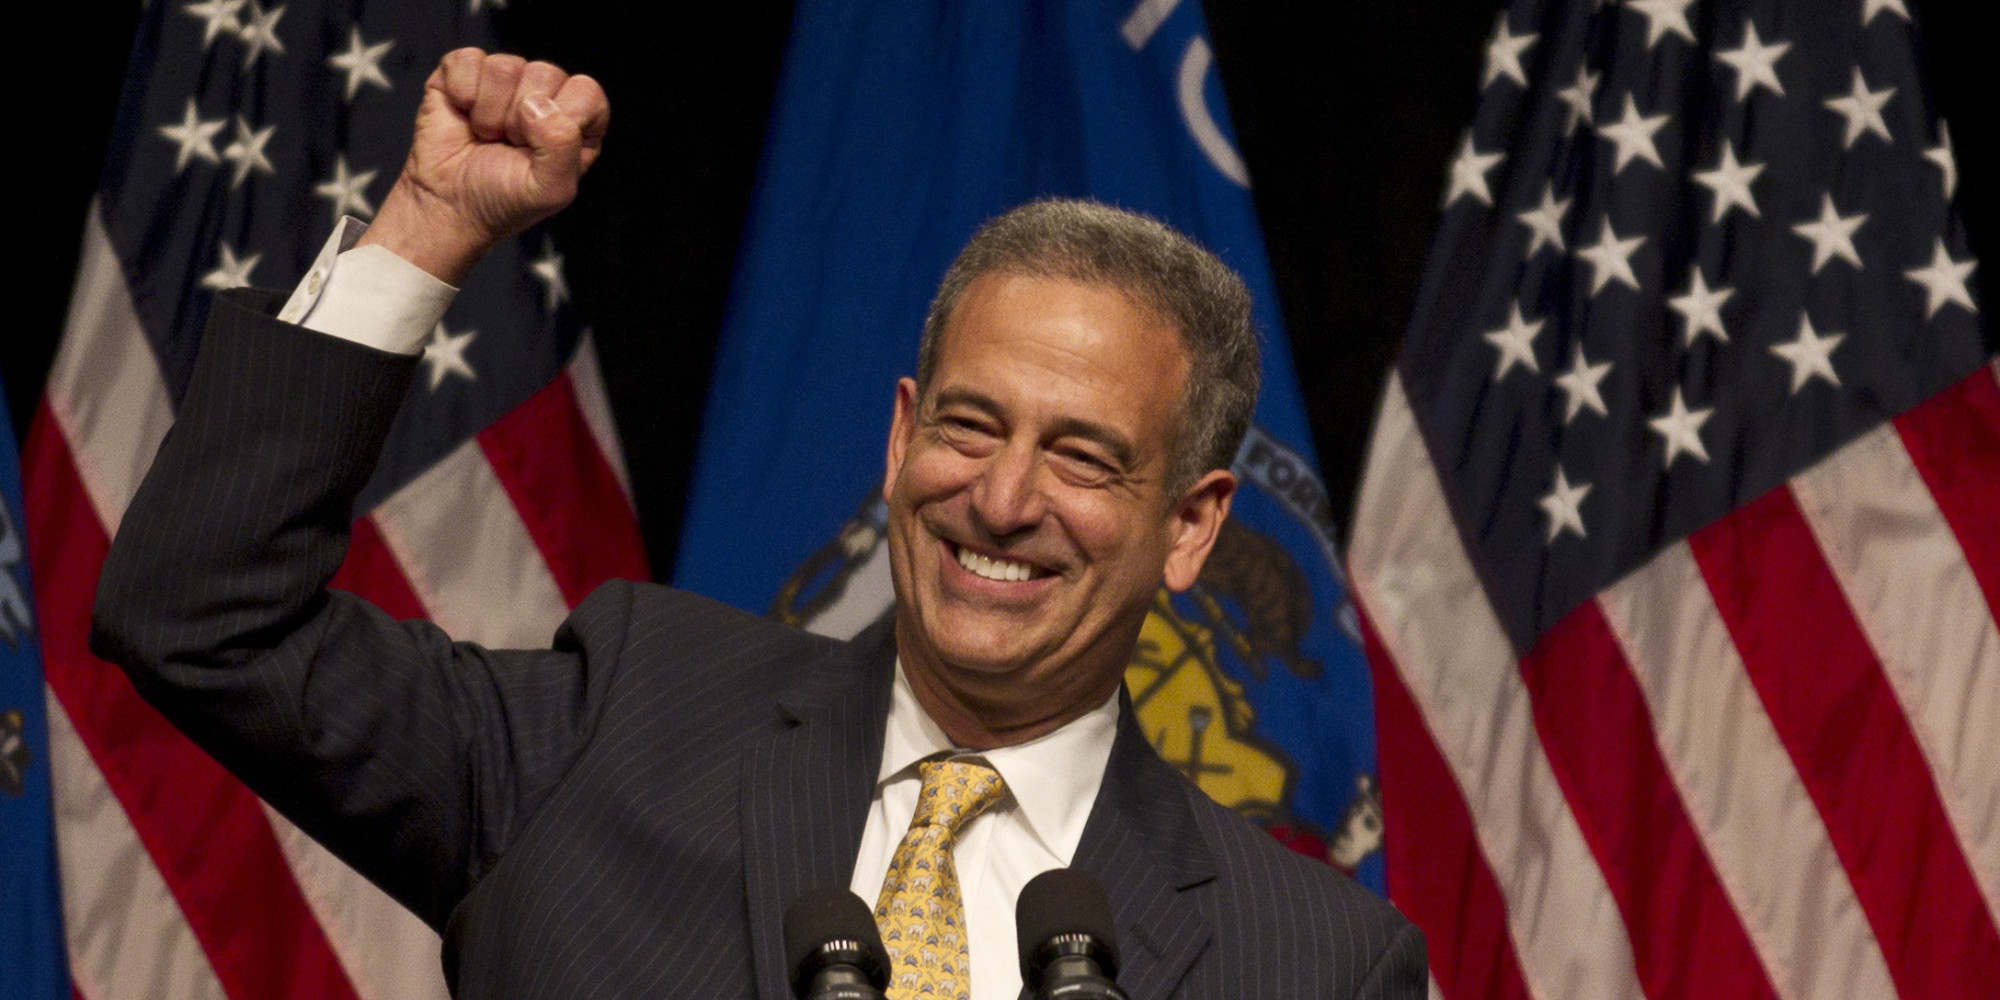 Russ Feingold smiling with a fist in the air while speaking at a campaign event. American flags in the background